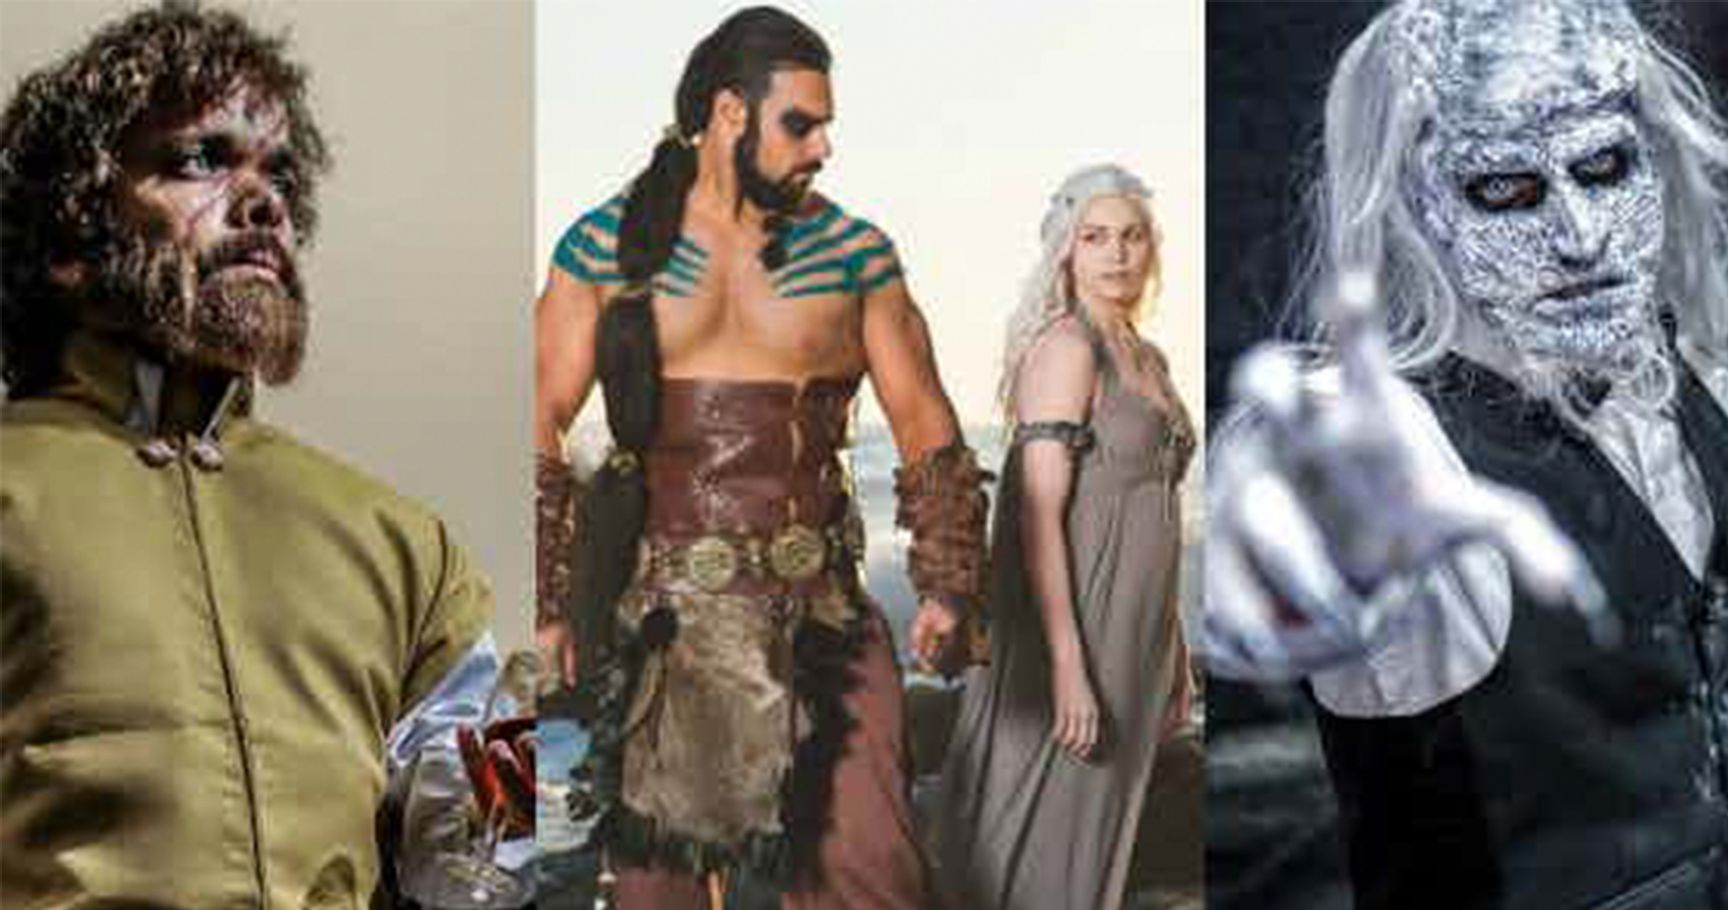 15 Jaw Dropping 'Game of Thrones' Cosplays That Are Realistic AF